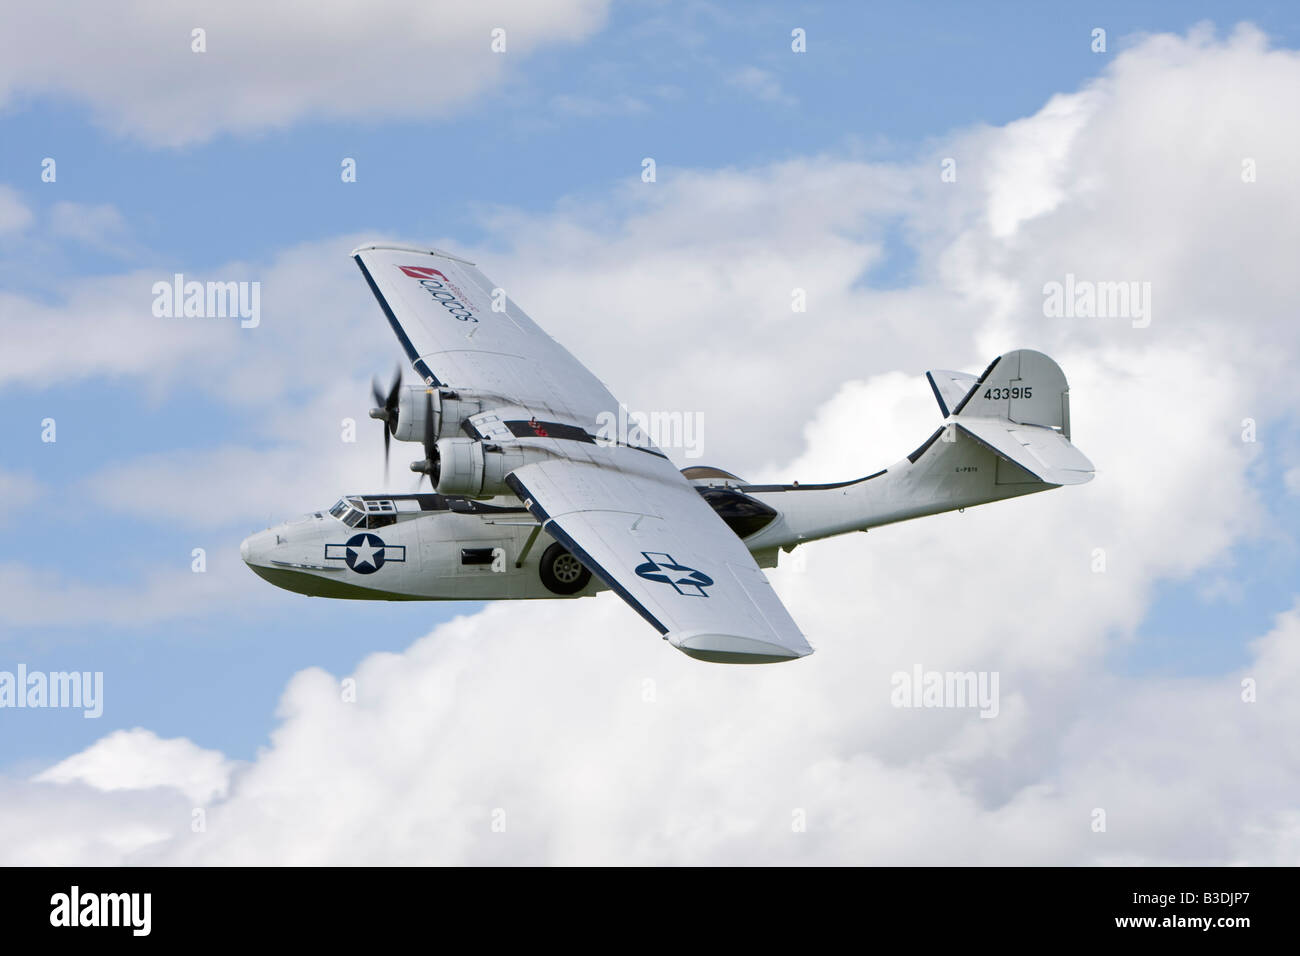 Canadian Vickers Canso PBY 5A Catalina - Stock Image